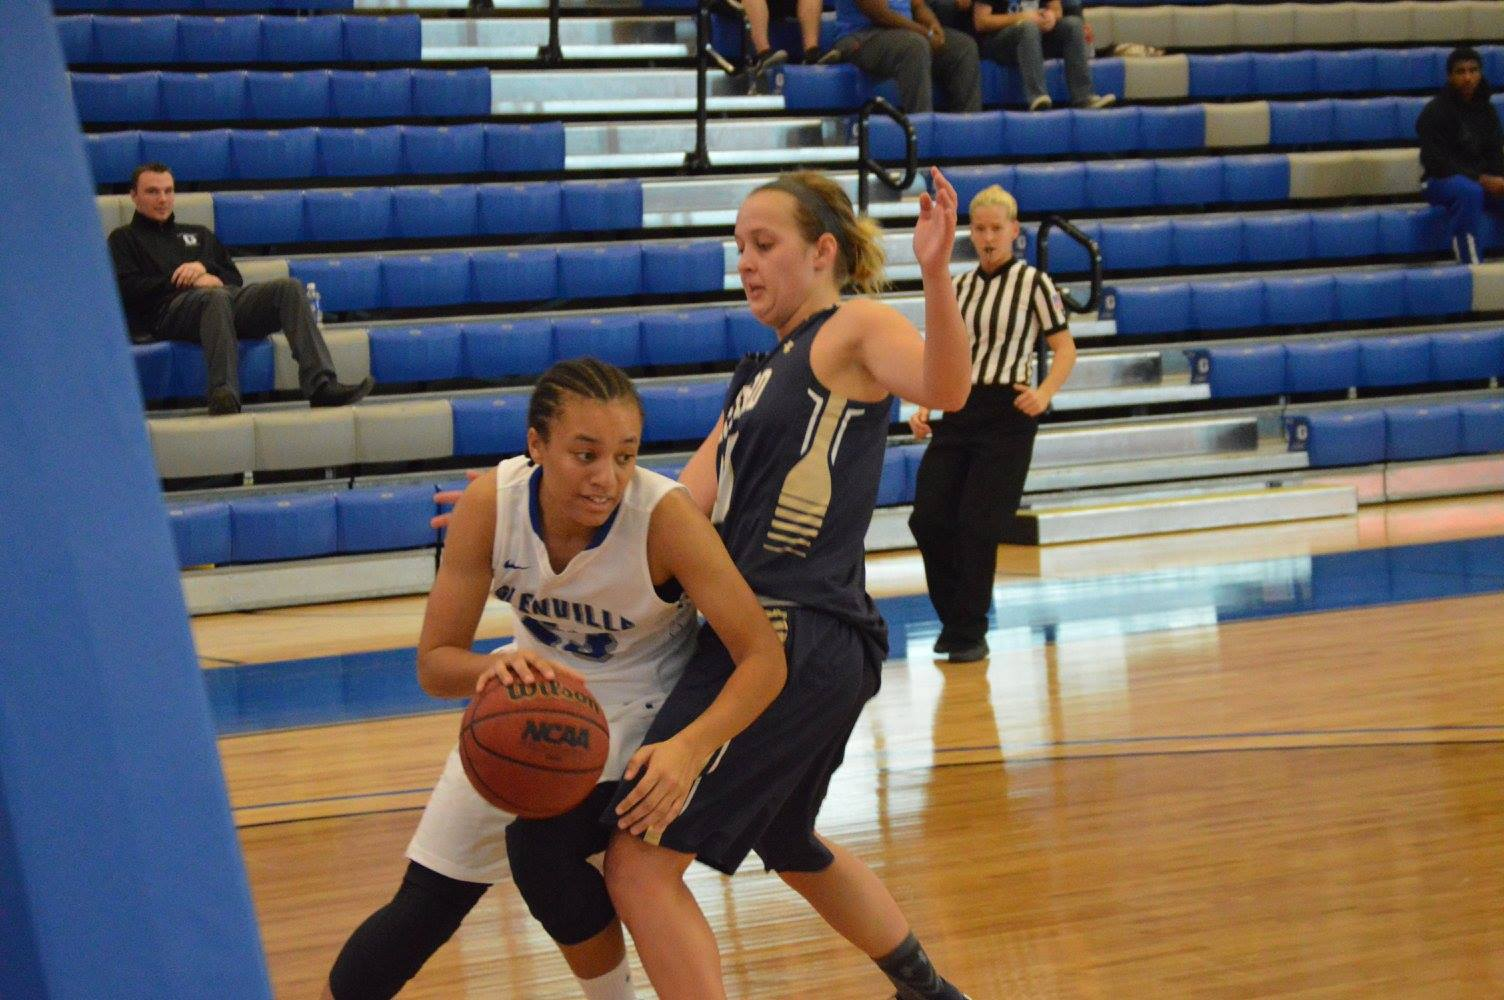 glenville women Gsc pioneers face off against the west liberty hilltoppers at the waco center in glenville wv on january 8, 2017.